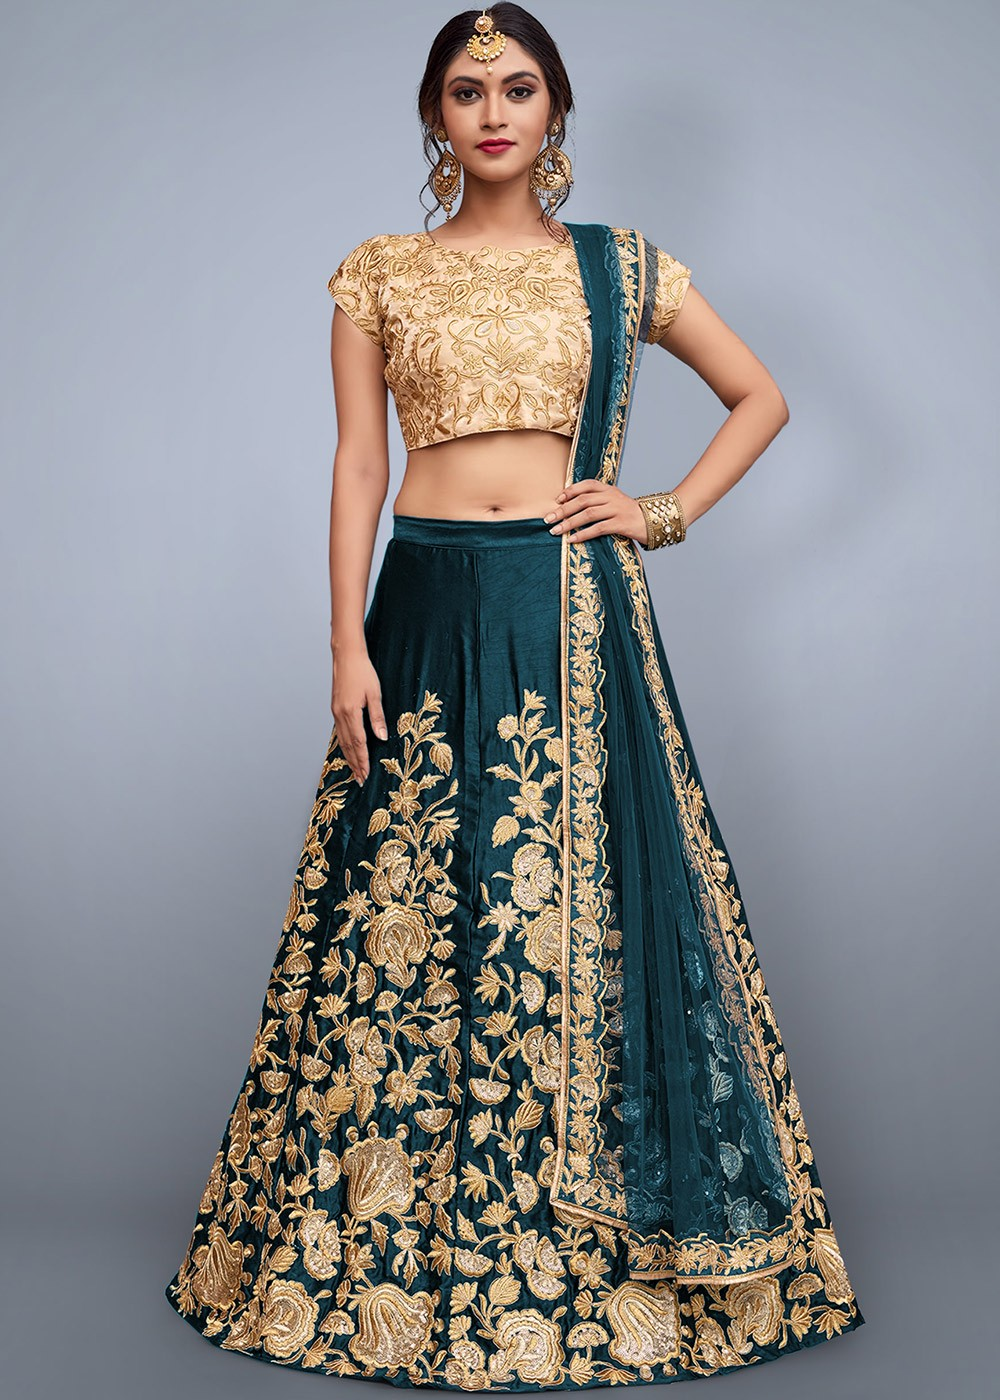 58d210c081 Buy Teal Green Embroidered Indian Bridal Lengha Choli Online USA ...